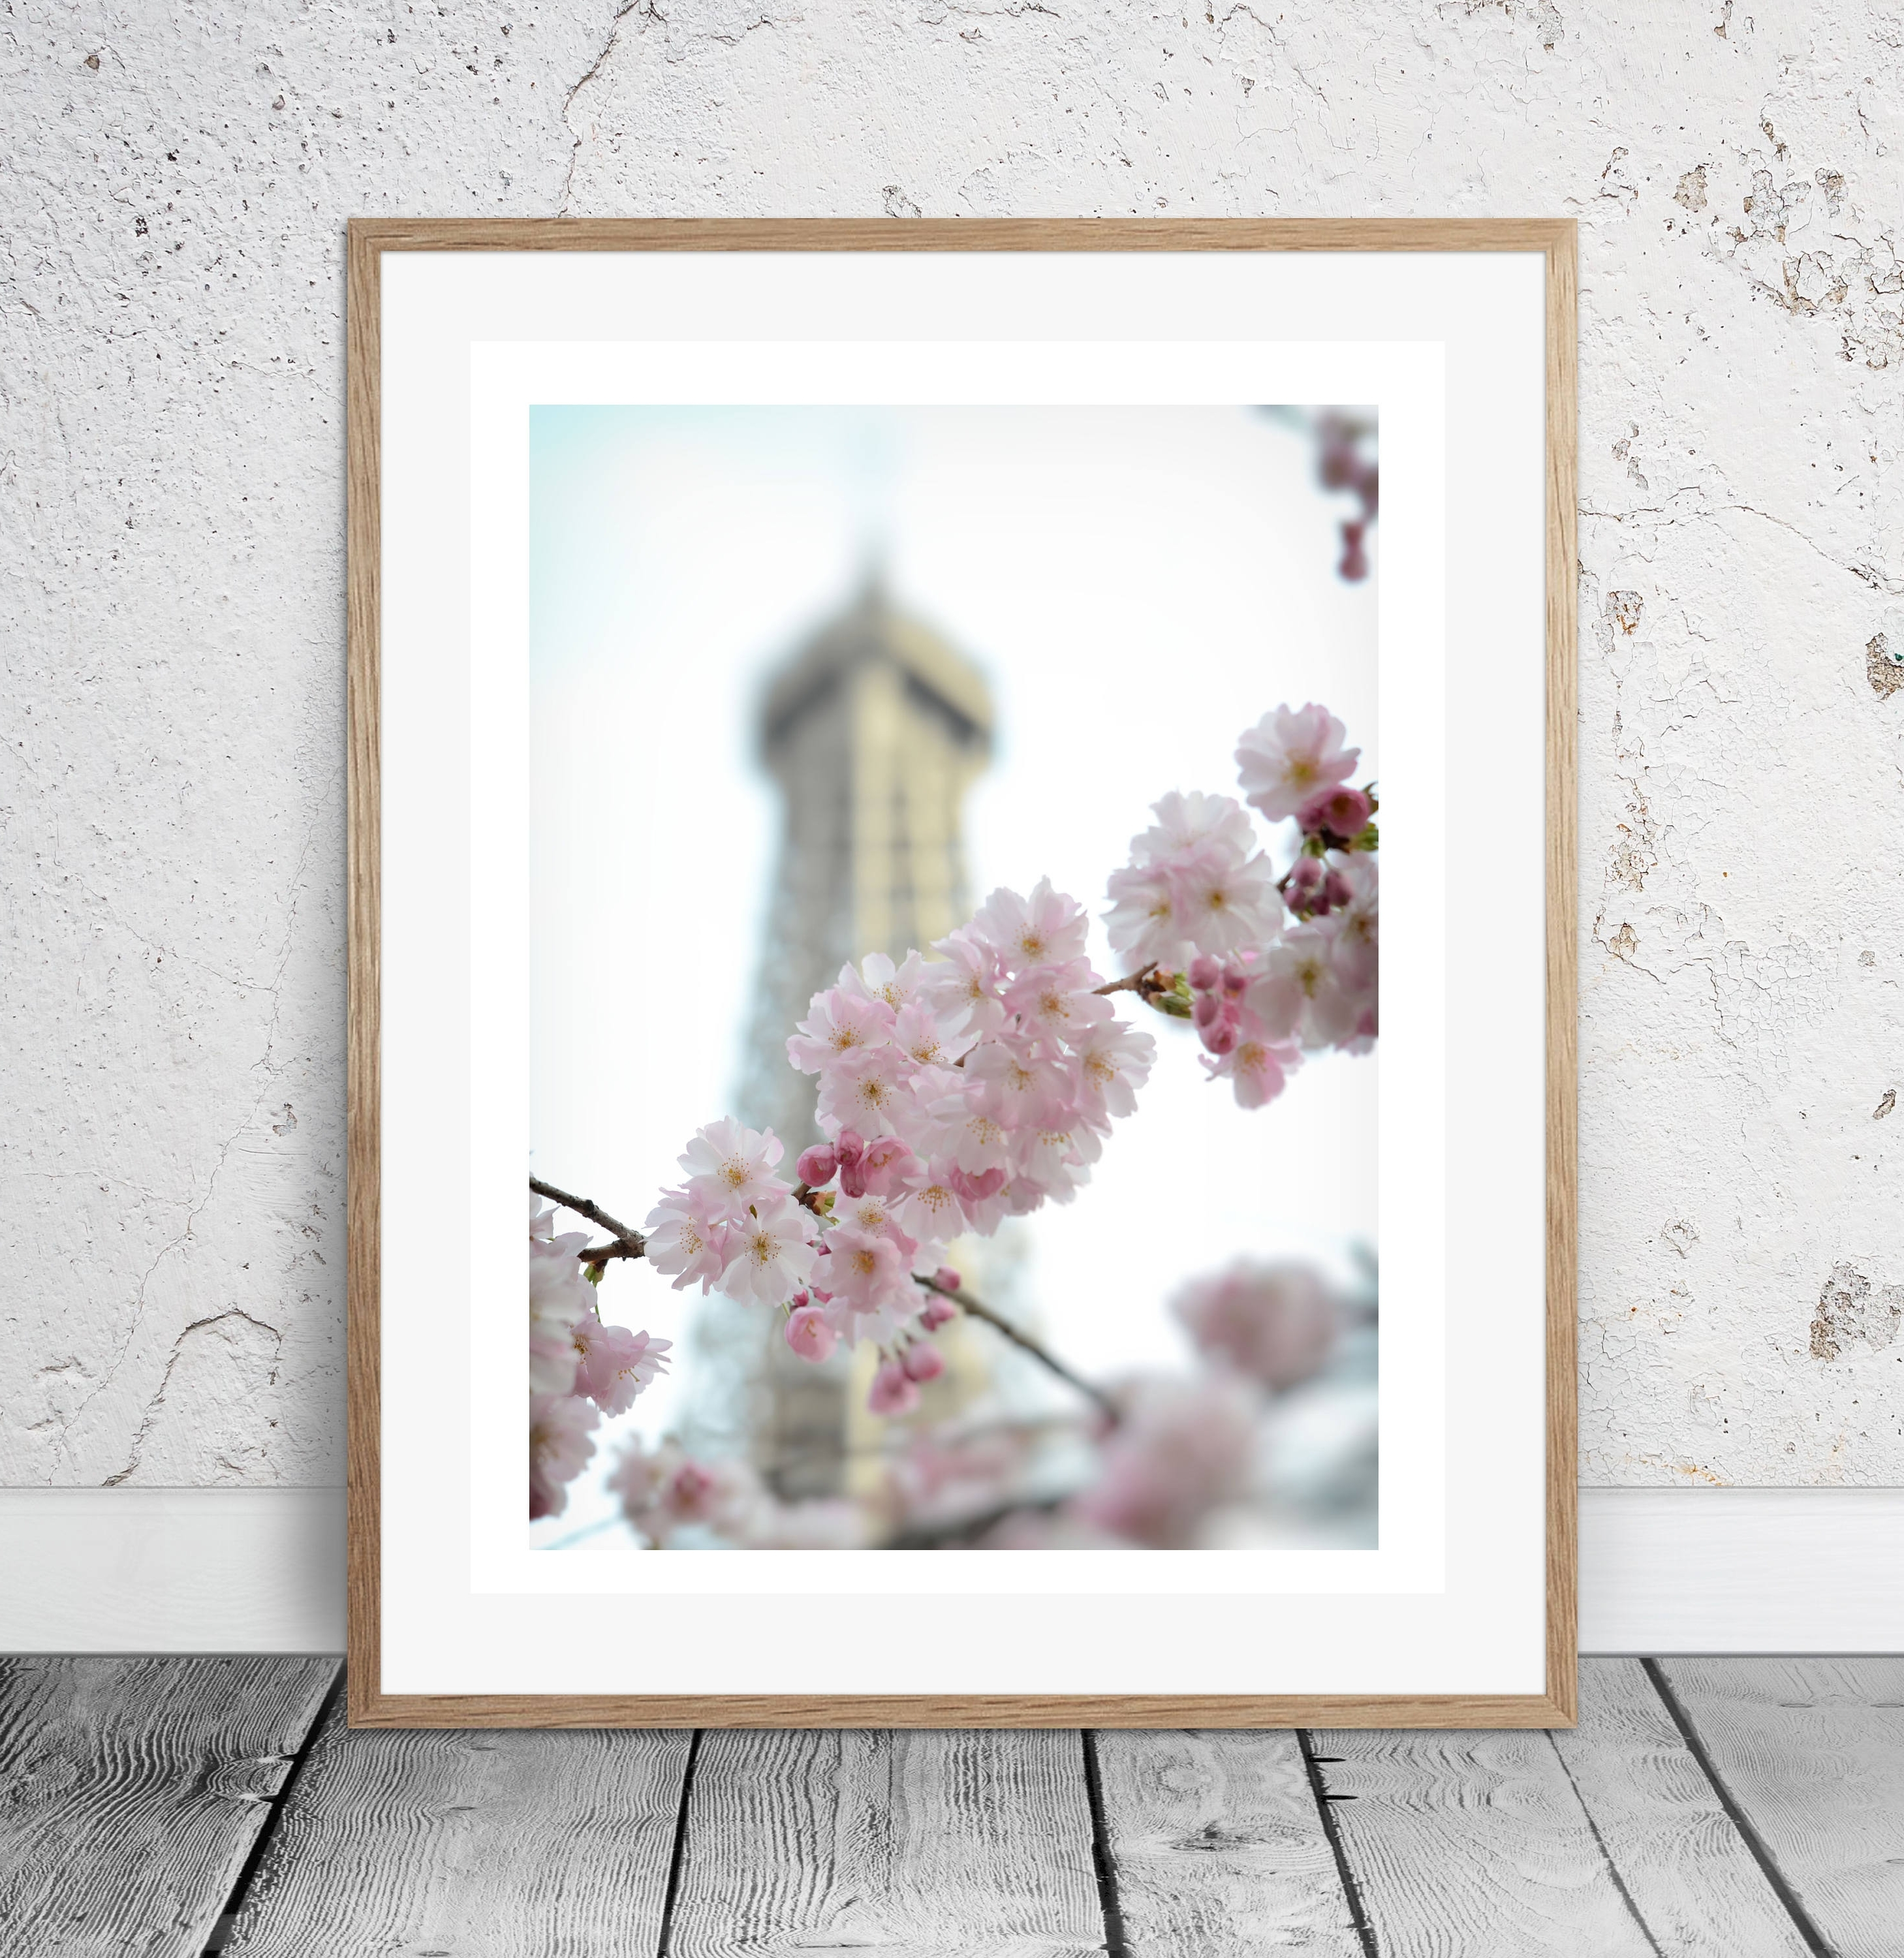 Well Known Cherry Blossoms, Paris, Wall Art, Photography, Digital Download Inside Paris Wall Art (View 10 of 15)